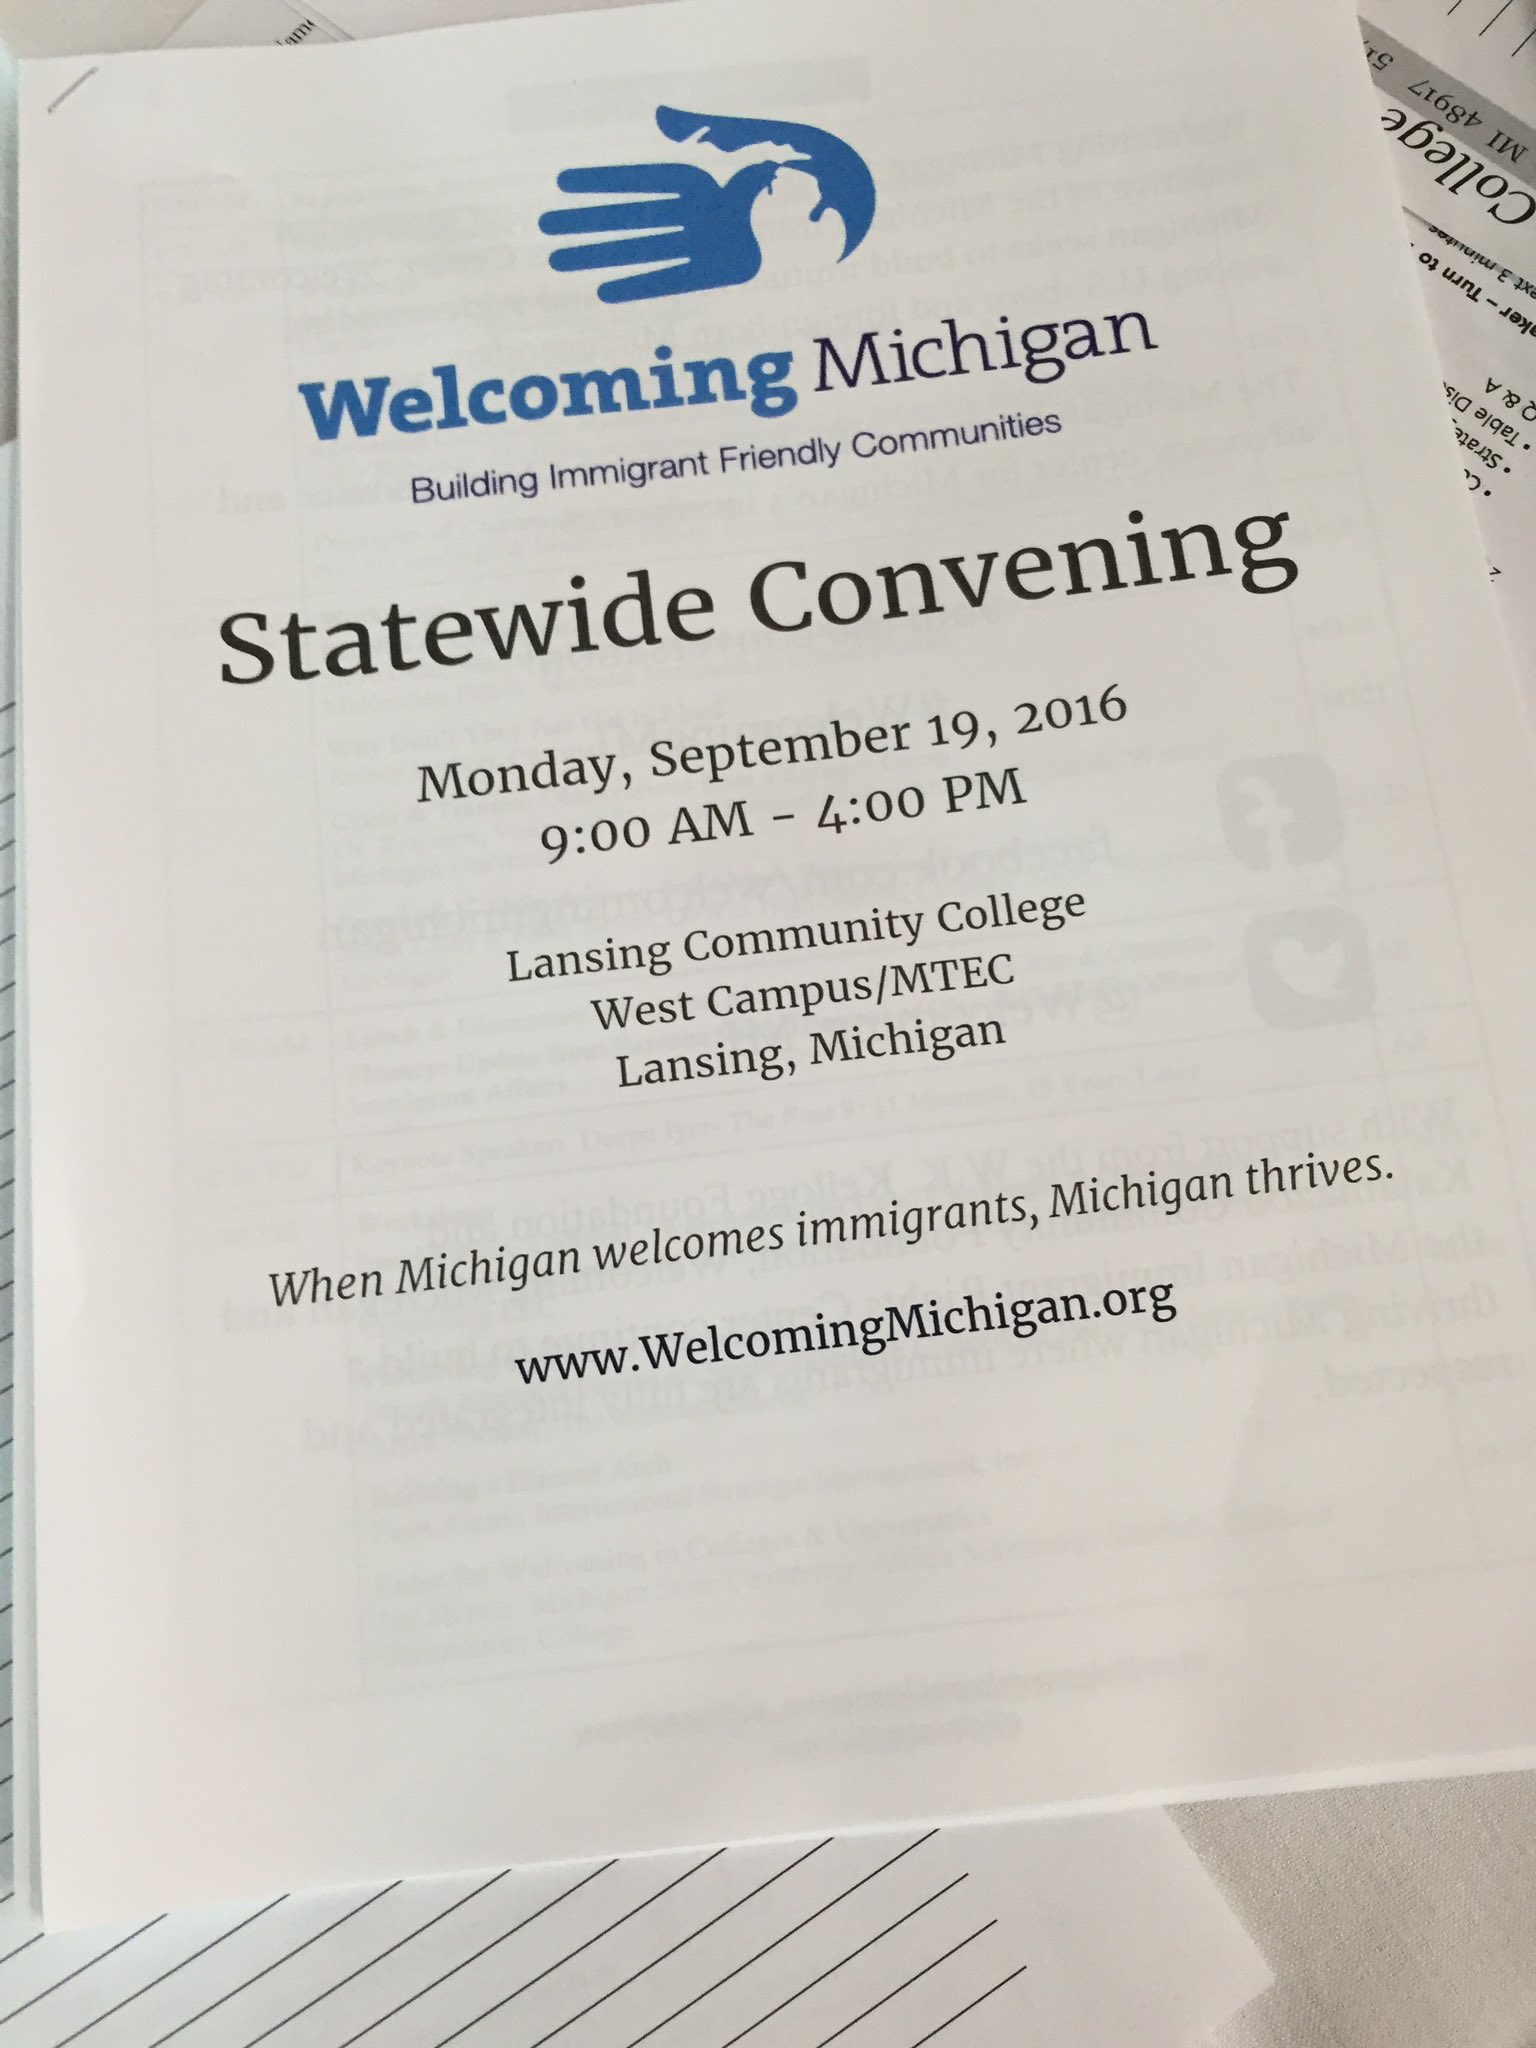 We're excited to present @Welcoming_MI Statewide Convening in @lansingmichigan today! #WelcomingWeek #WelcomingMi https://t.co/LJpnc5WLwf